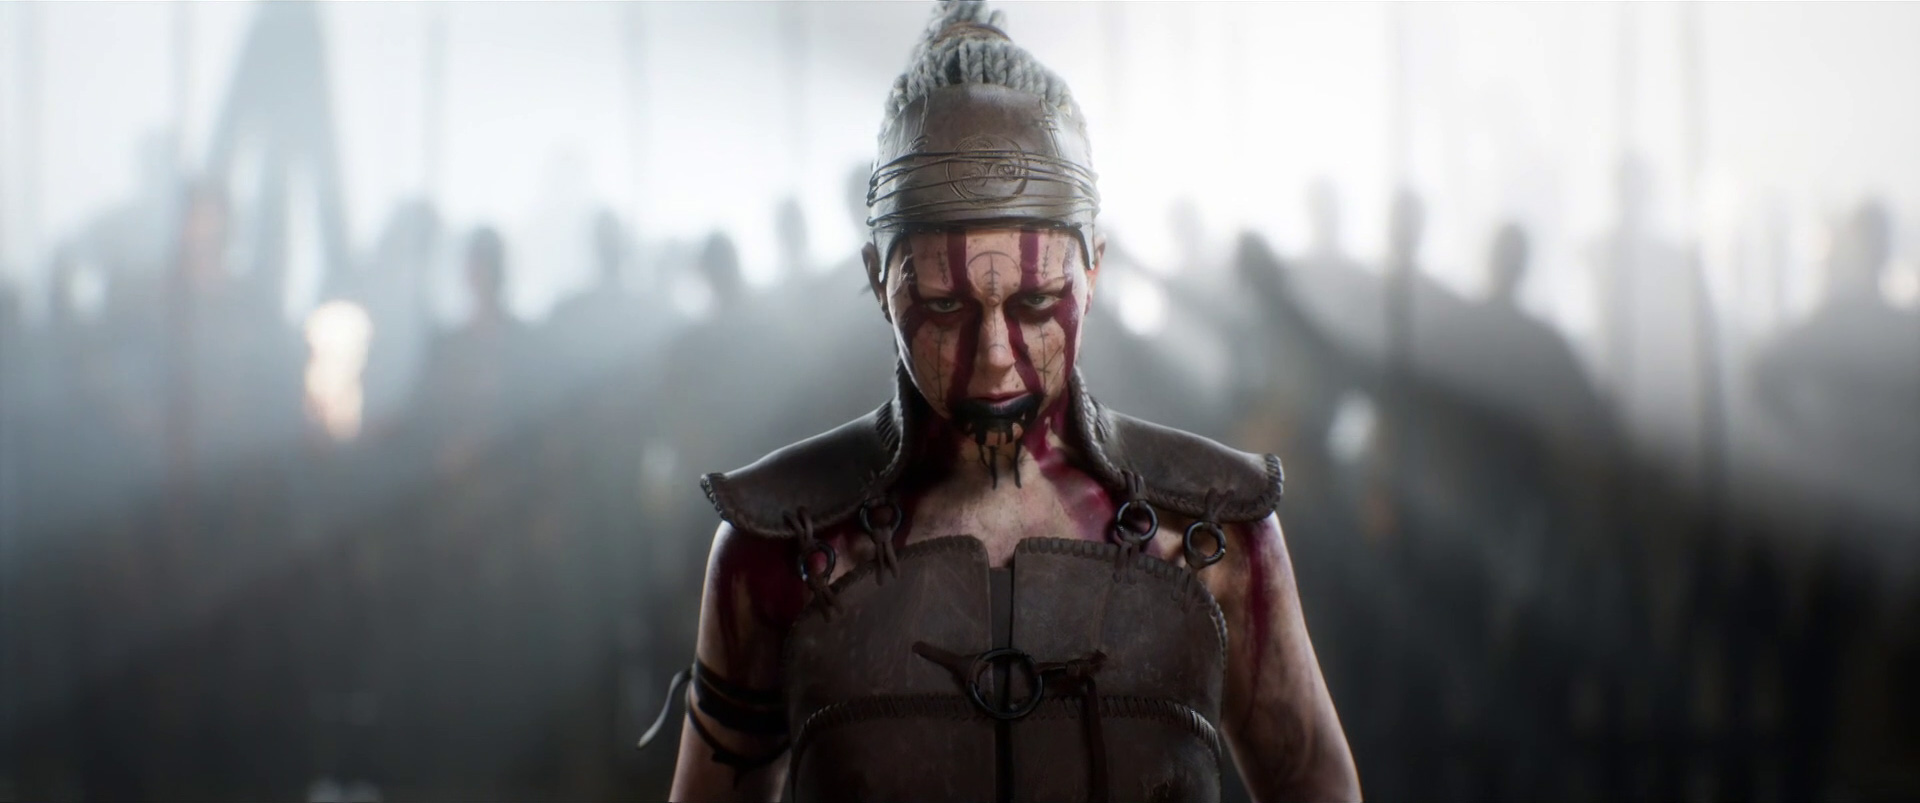 Senua with army and white light behind her in Senua's Saga: Hellblade 2